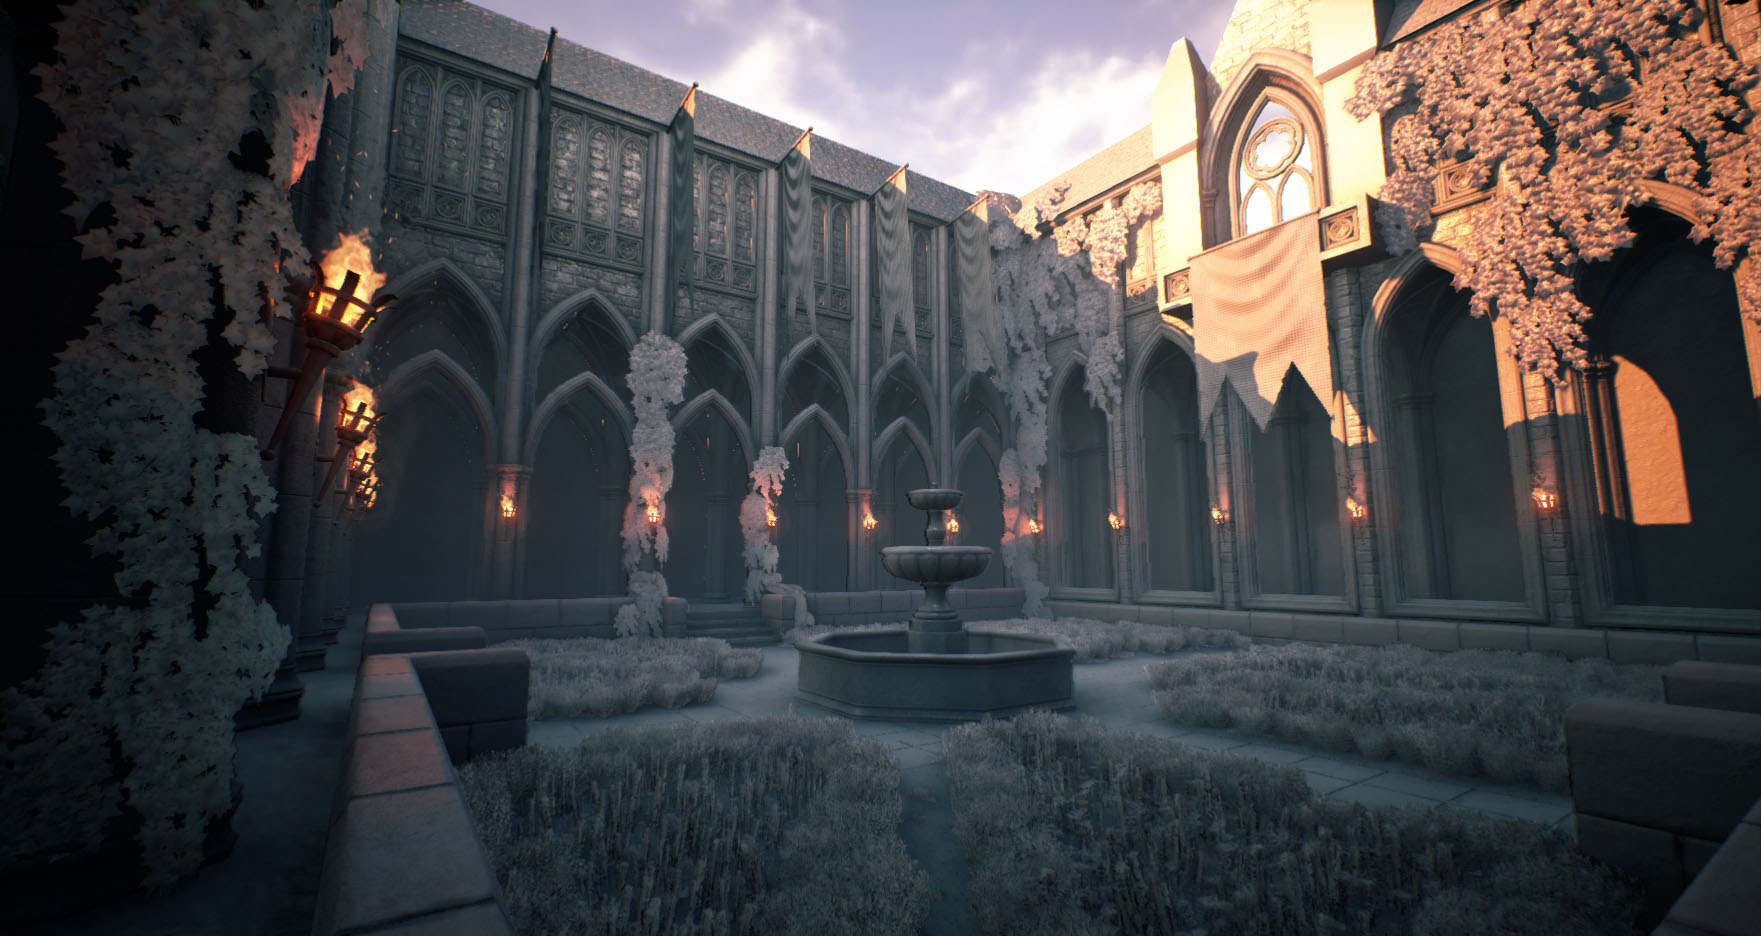 courtyard_wip8_lighting.jpg